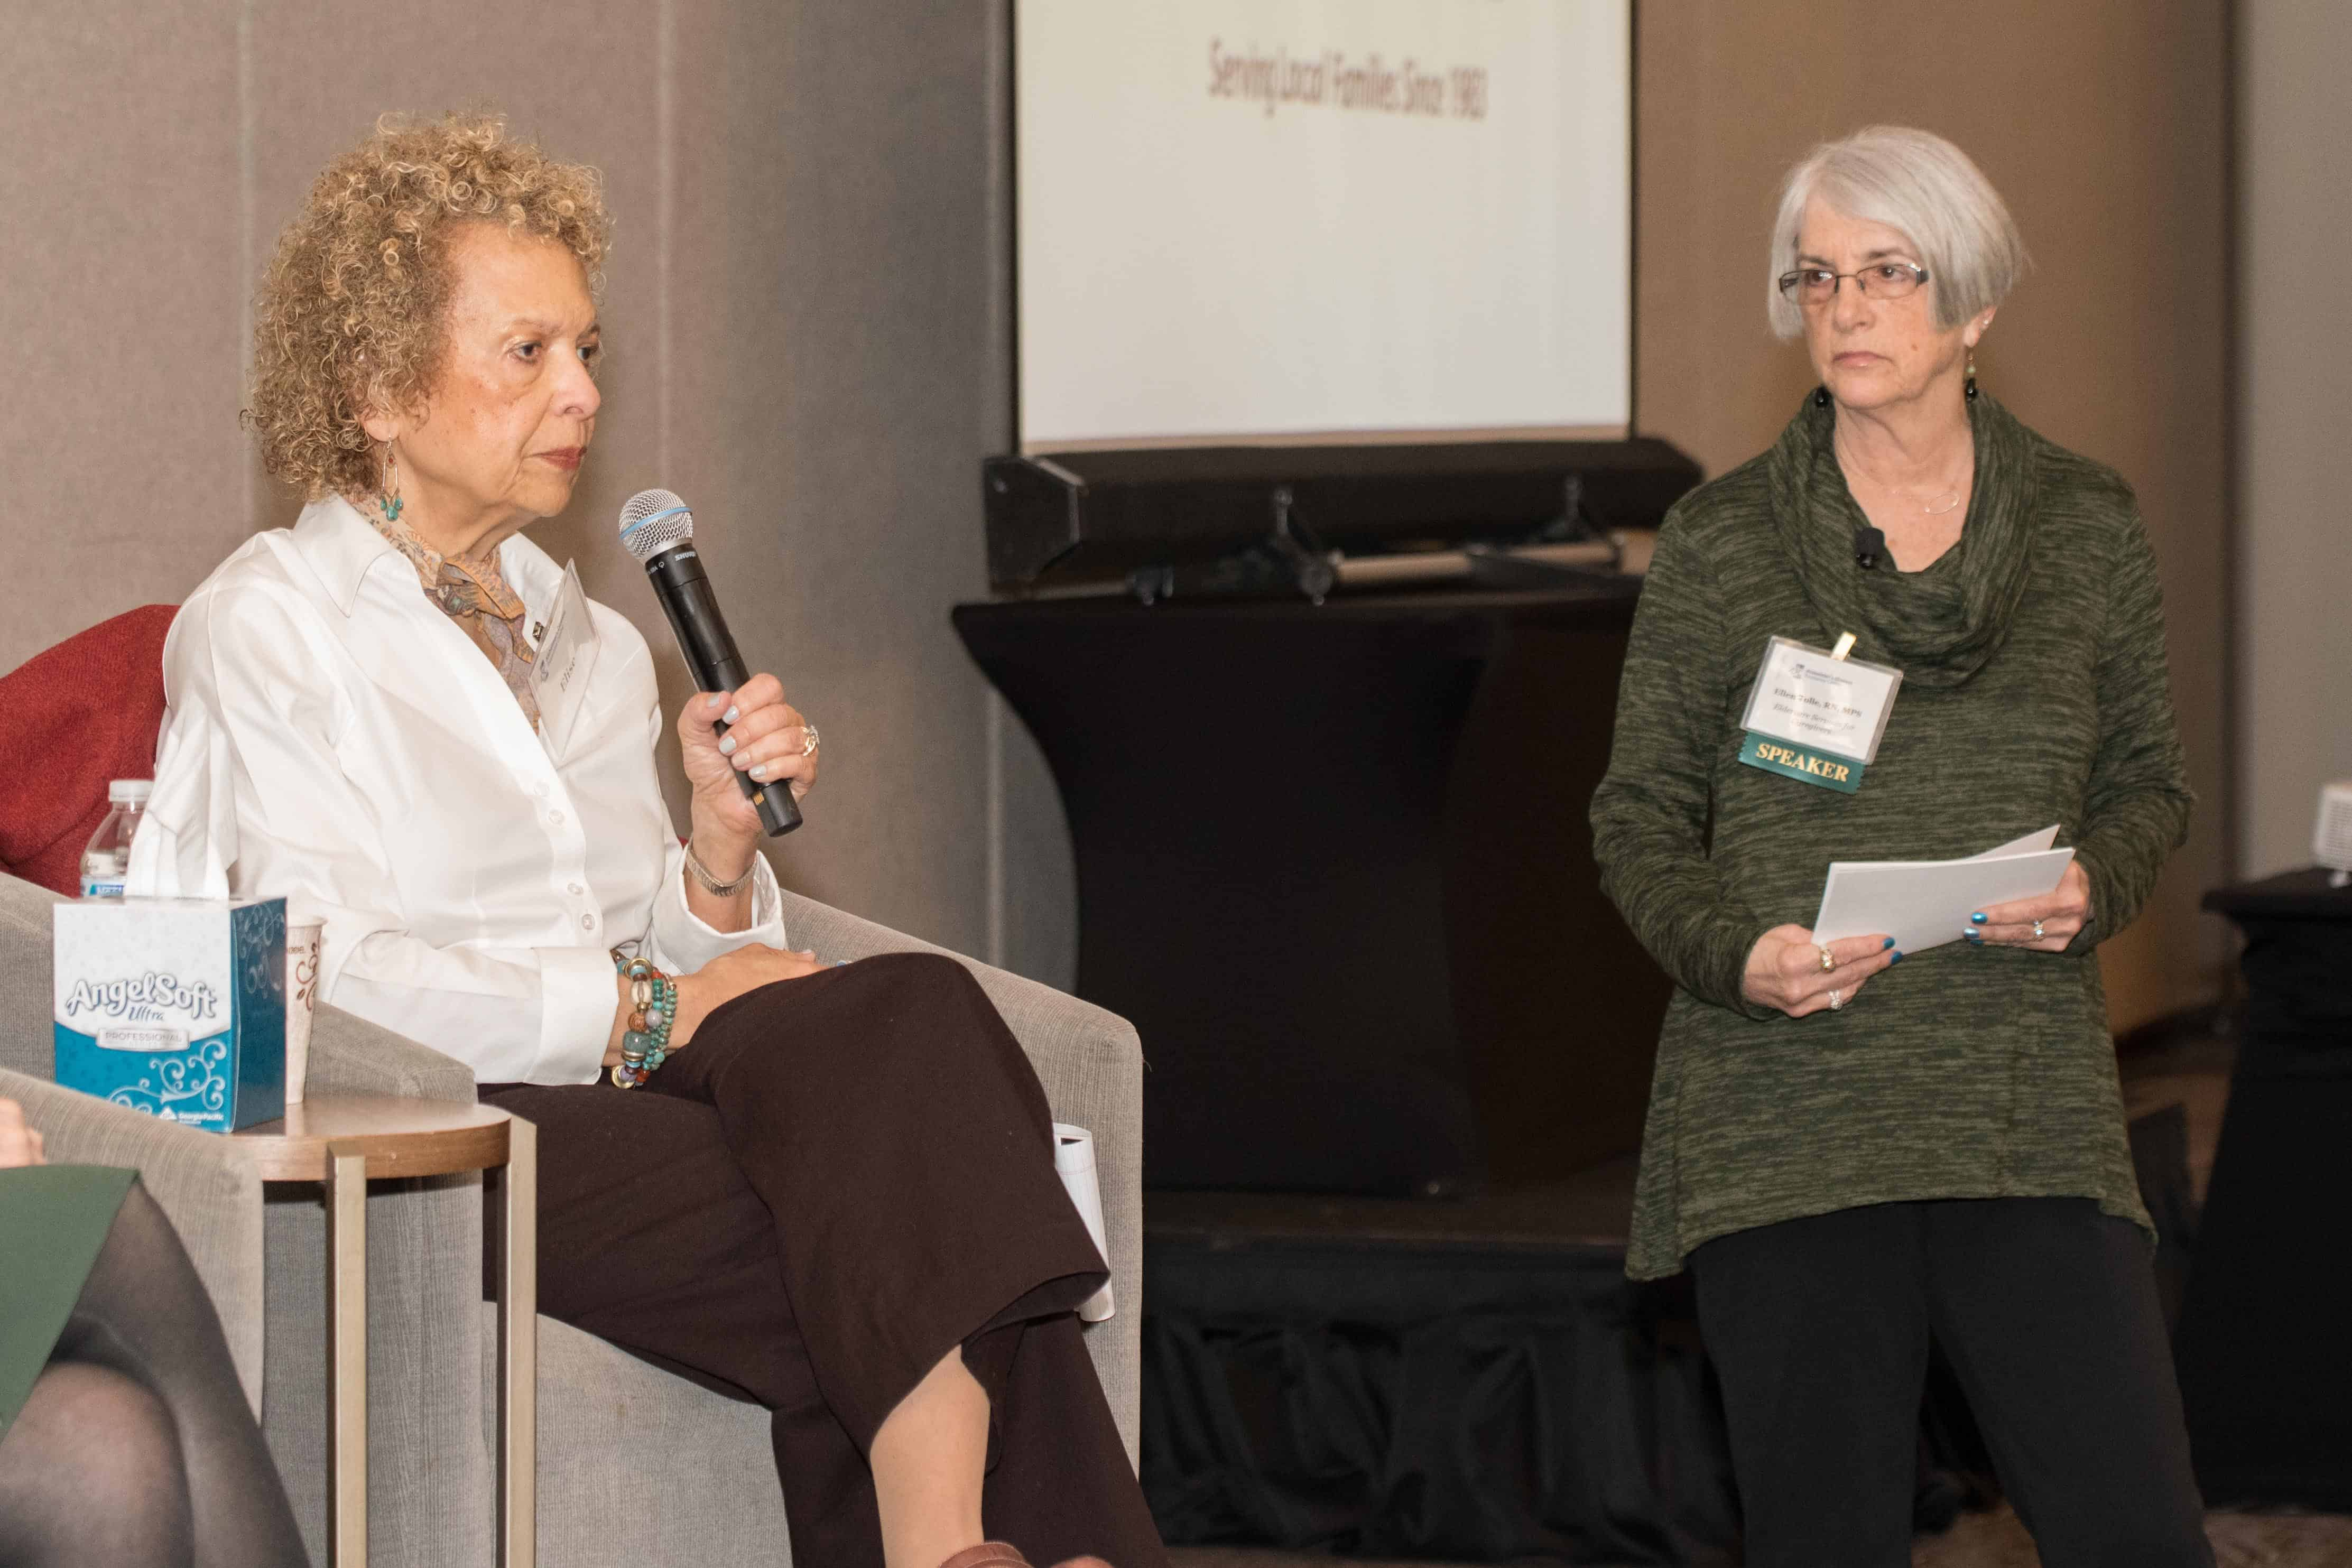 Alzheimer's caregivers shared their perspectives and experience.